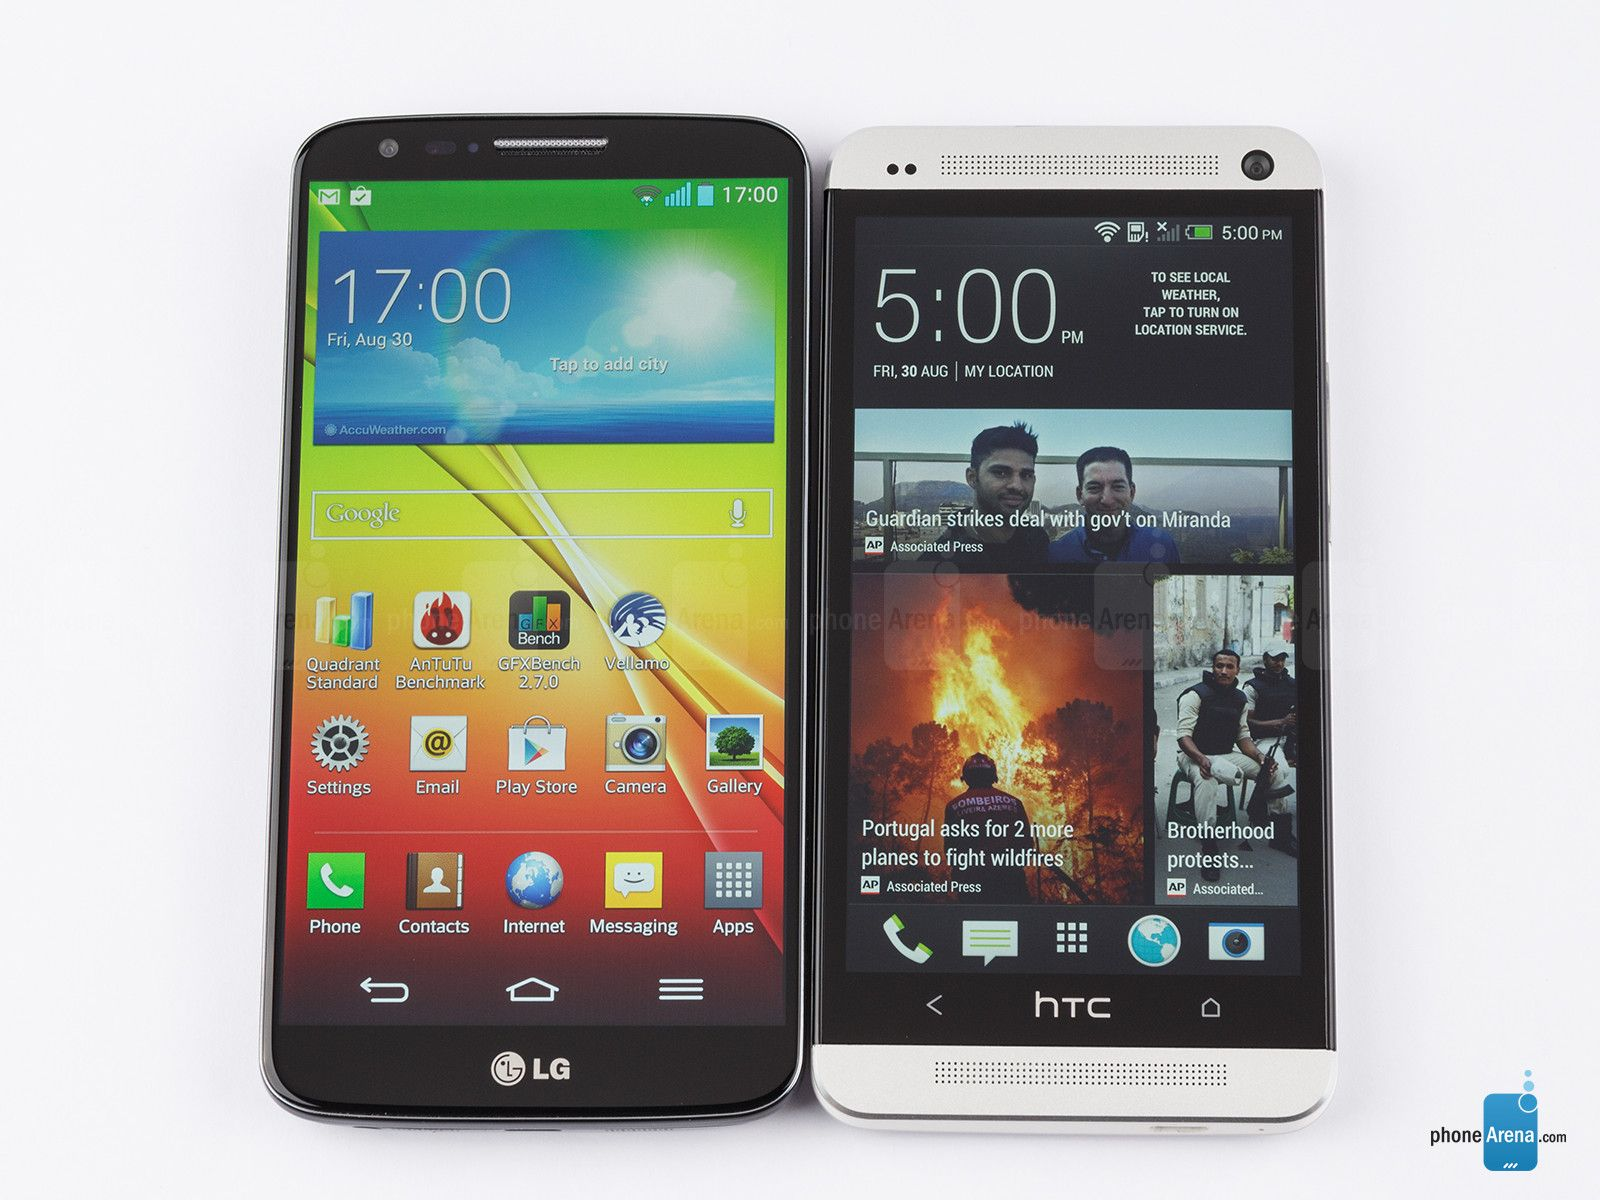 LG G2 App Store | Stuff to buy | HTC One, Stereo speakers